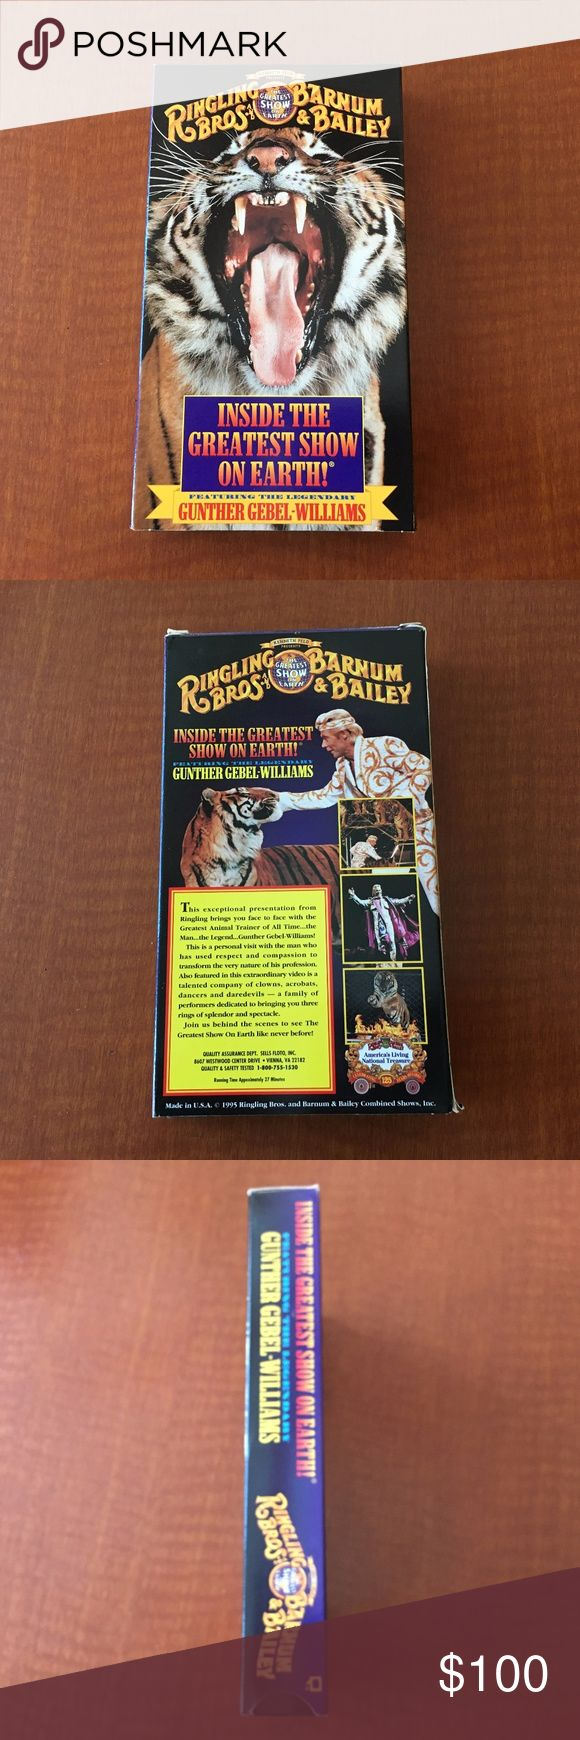 Ringling Brothers Barnum & Bailey - VHS TAPE NICE! Ringling Brothers Barnum & Bailey - INSIDE THE GREATEST SHOW ON EARTH - VHS TAPE FEATURING LEGENDARY ANIMAL TRAINER GUNTHER GEBEL-WILLIAMS  BEHIND THE SCENES LOOK AT THE GREATEST SHOW ON EARTH - VISIT WITH THE GREATEST ANIMAL TRAINER, CLOWNS, ACROBATS, DANCERS ETC!!!  *** CIRCUS CLOSED MAY 21, 2017 FOREVER!!!  PRICE REFLECTS  CLOSURE OF THE 146 YEAR OLD CIRCUS!!! ***  GOT THIS AT CIRCUS - WATCHED 1X.    COLLECTORS ITEM - WILL INCREASE IN…